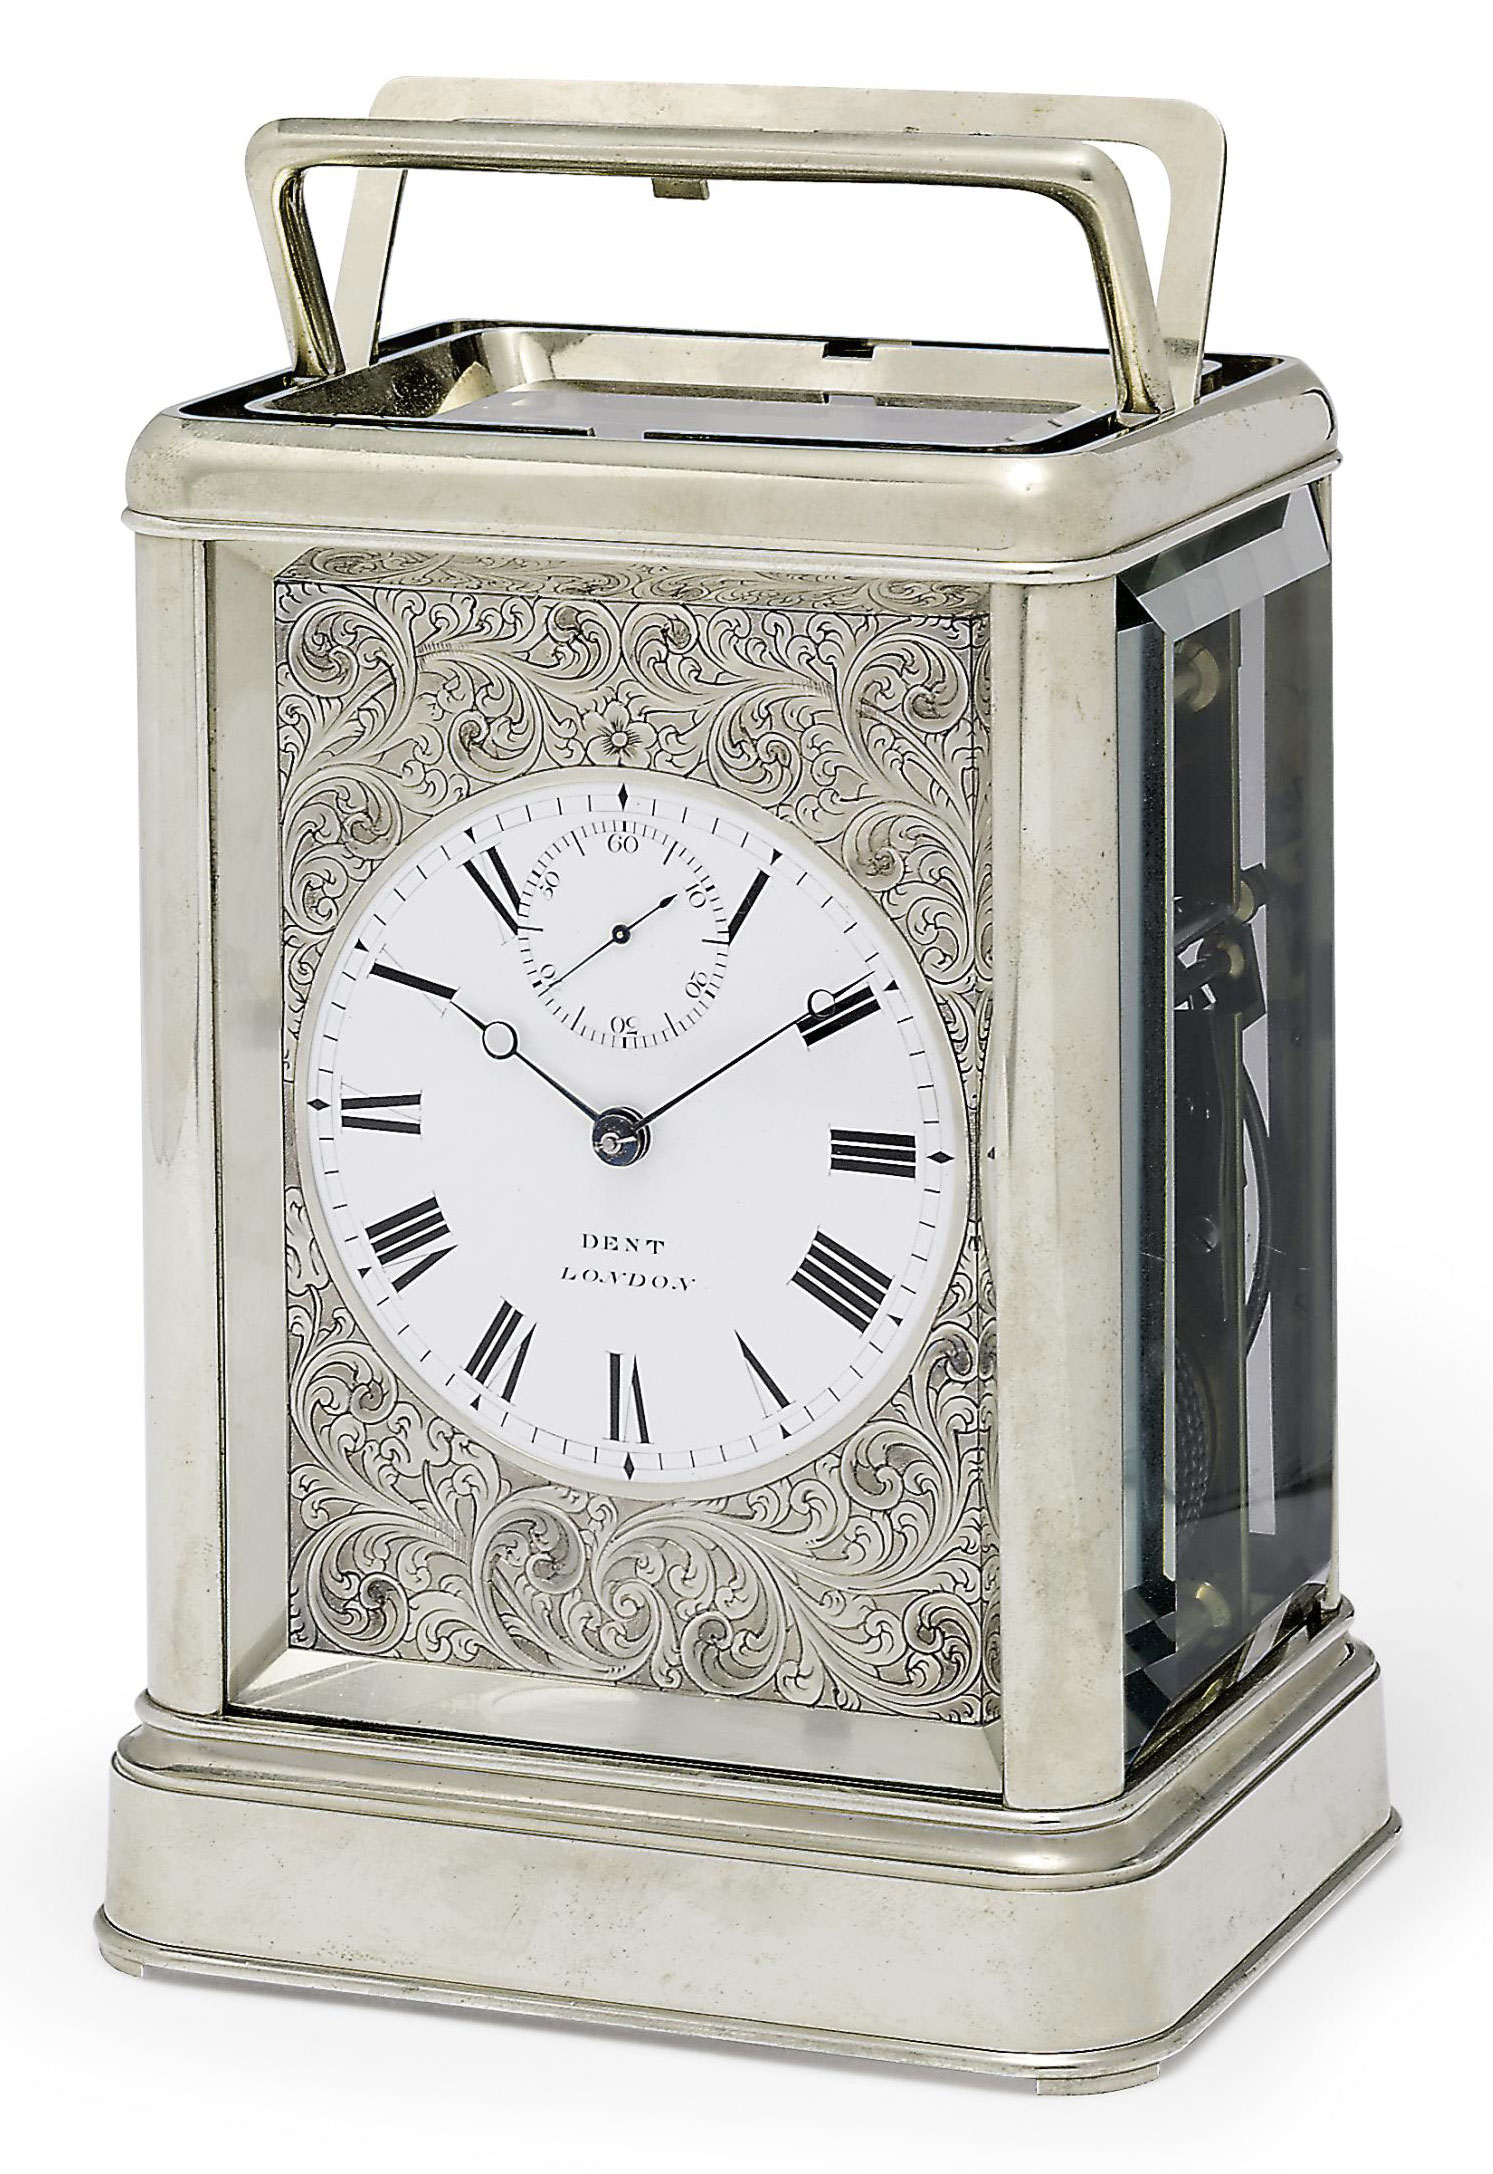 A VICTORIAN GIANT NICKEL QUARTER-STRIKING EIGHT DAY CHRONOMETER CARRIAGE CLOCK WITH DENT'S STAPLE BALANCE AND SPLIT HANDLE